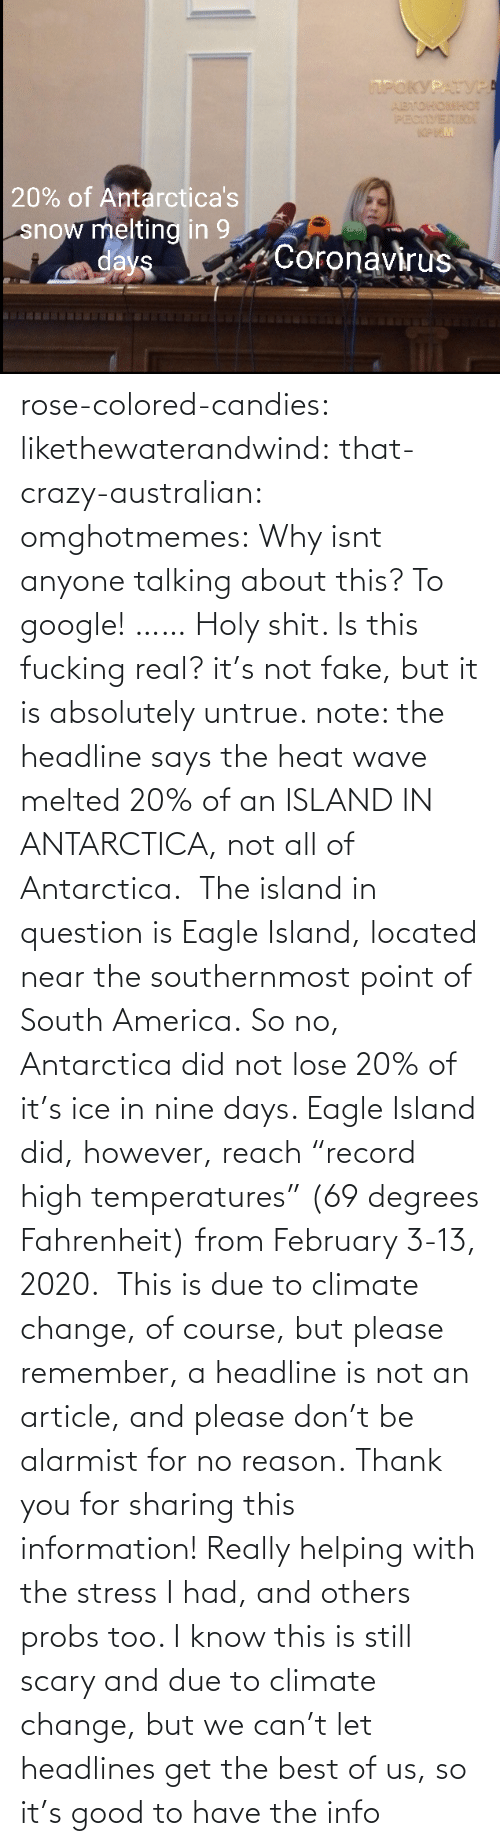 "no reason: rose-colored-candies: likethewaterandwind:   that-crazy-australian:  omghotmemes:  Why isnt anyone talking about this?   To google!  ……   Holy shit. Is this fucking real?   it's not fake, but it is absolutely untrue. note: the headline says the heat wave melted 20% of an ISLAND IN ANTARCTICA, not all of Antarctica.  The island in question is Eagle Island, located near the southernmost point of South America. So no, Antarctica did not lose 20% of it's ice in nine days. Eagle Island did, however, reach ""record high temperatures"" (69 degrees Fahrenheit) from February 3-13, 2020.  This is due to climate change, of course, but please remember, a headline is not an article, and please don't be alarmist for no reason.    Thank you for sharing this information! Really helping with the stress I had, and others probs too. I know this is still scary and due to climate change, but we can't let headlines get the best of us, so it's good to have the info"